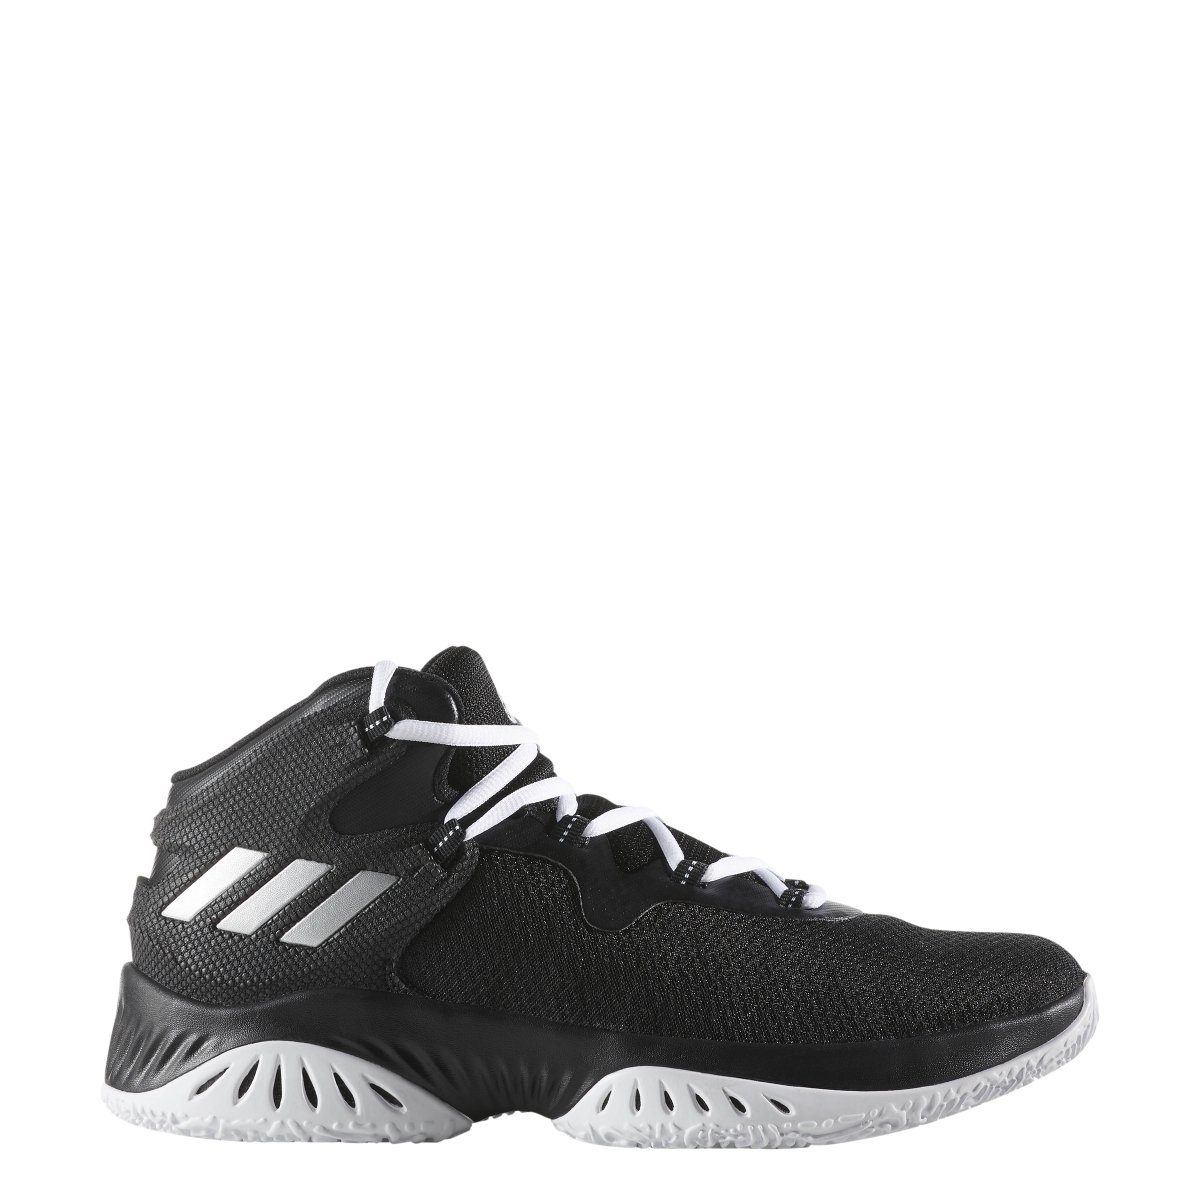 adidas Men's Explosive Bounce Running Shoe B076FN1R9X 5.5 D(M) US|Black-silver Metallic-white